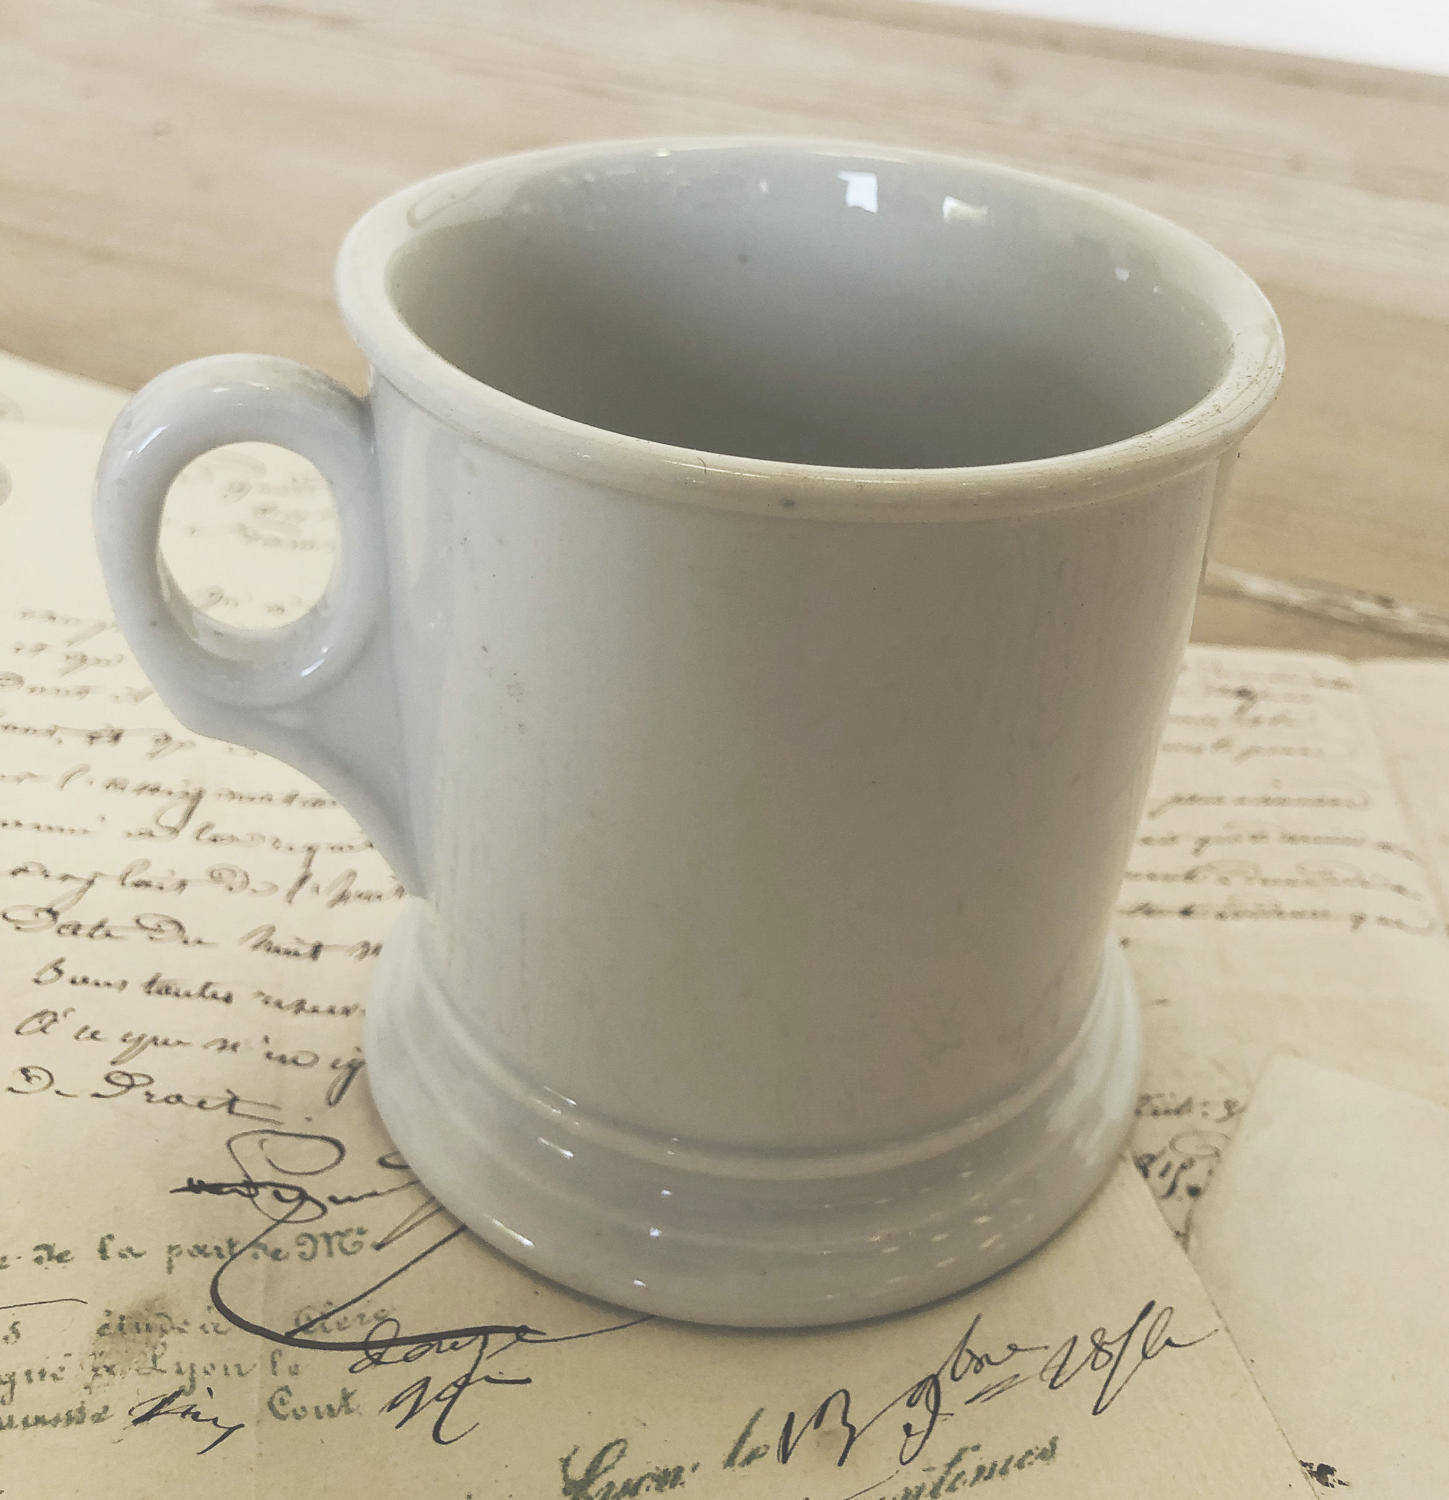 French White Porcelain Mug - circa 1900